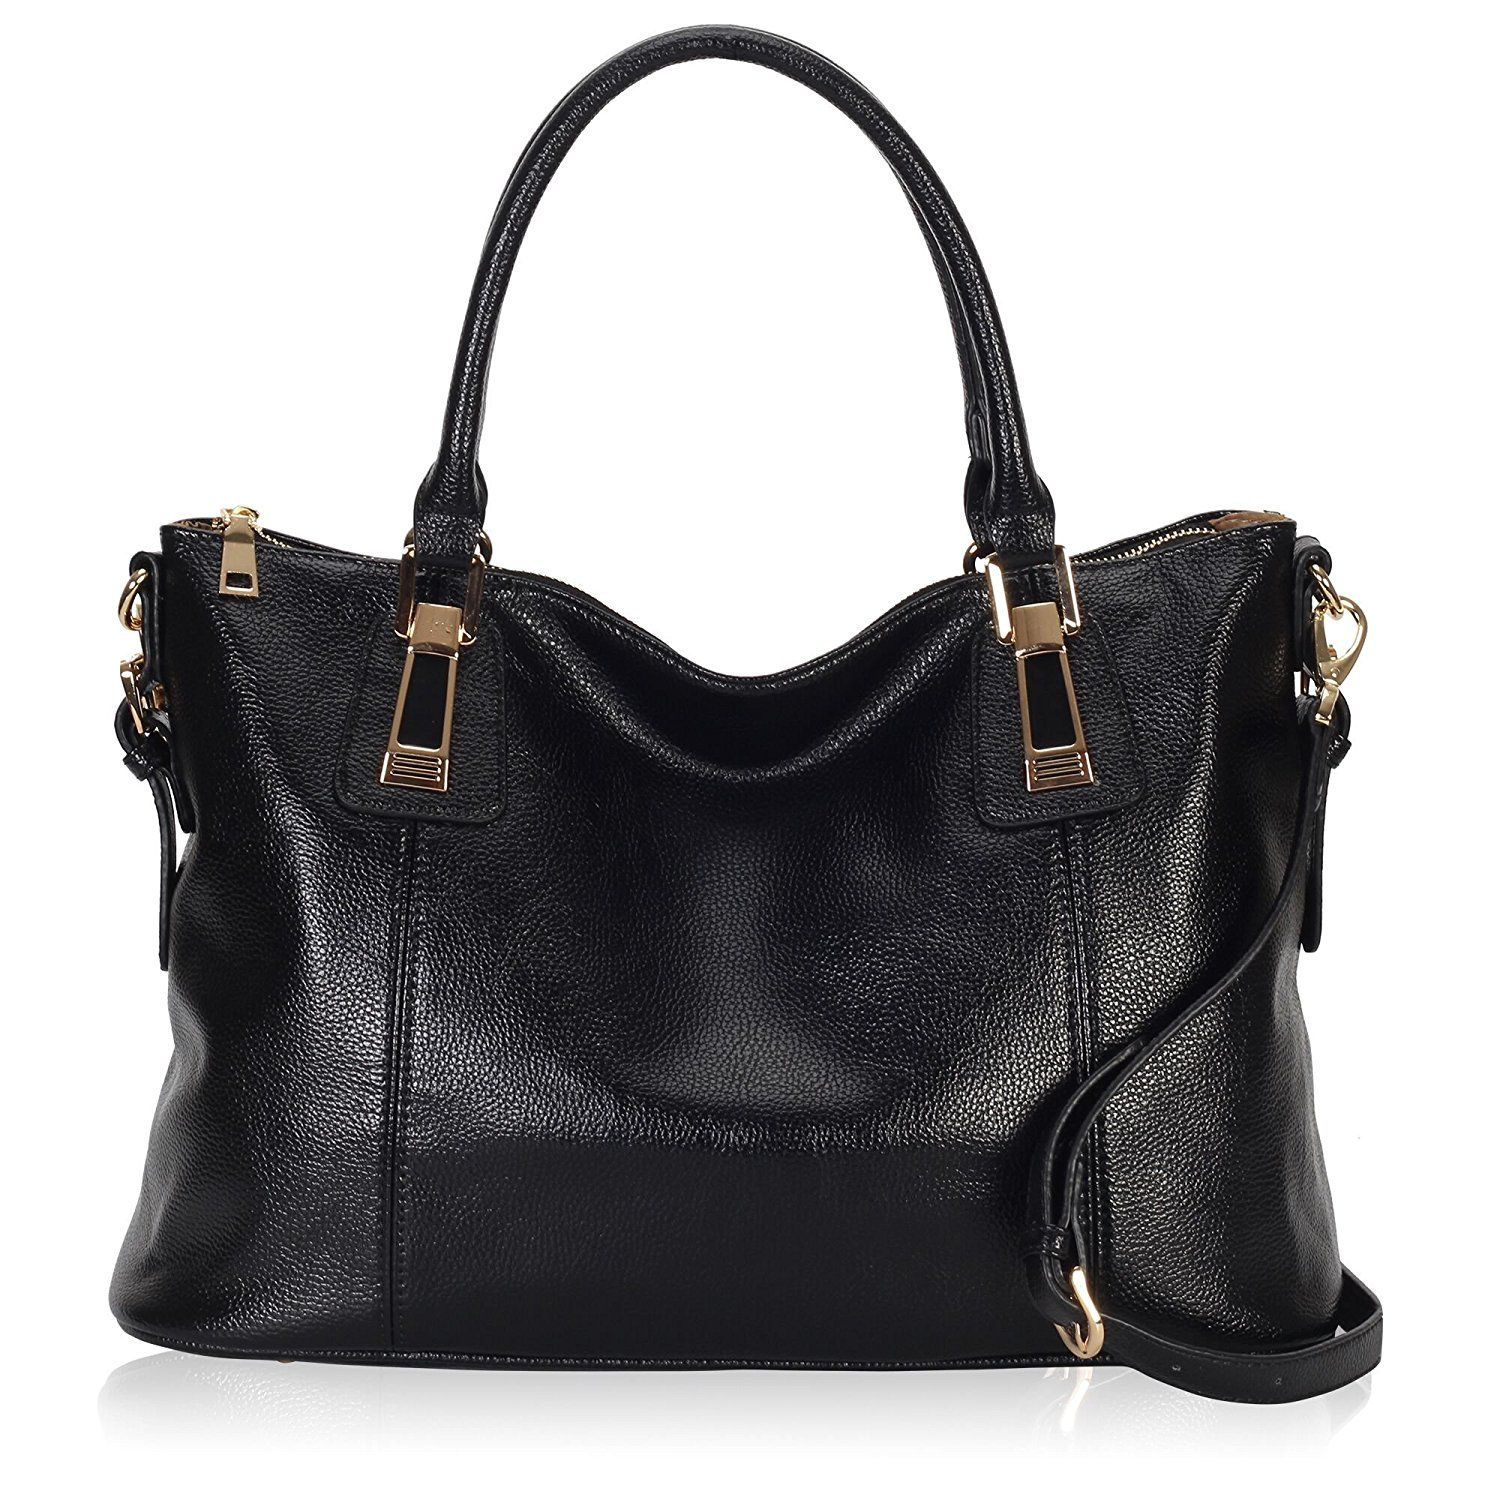 Veevan Large Faux Leather Handbag Ladies Women Bag Tote Plain Shoulder Bag(Black)   Amazon.co.uk  Shoes   Bags. UK handbag. UK handbags. Women handbag. 7f1fd3d56